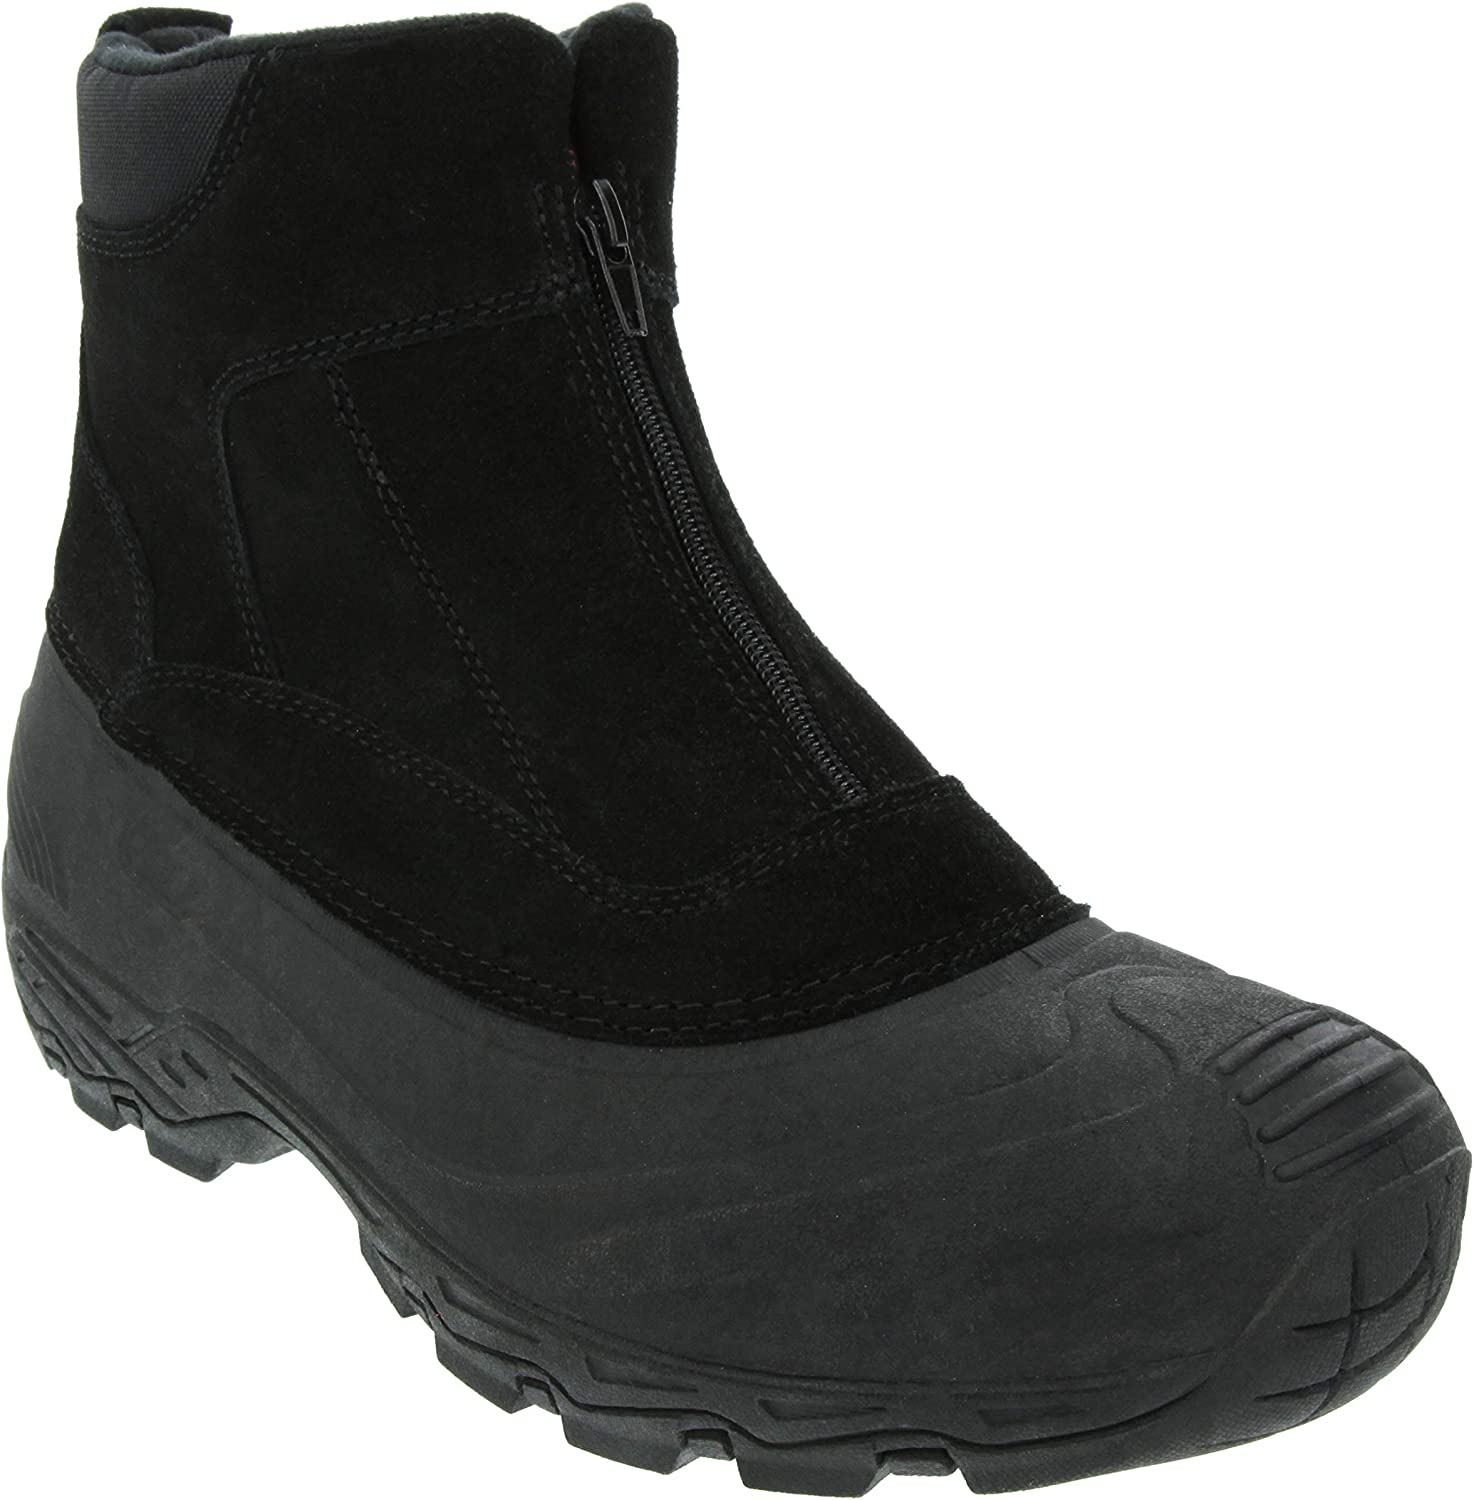 LONDON FOG Mens Holborn Max 56% OFF Waterproof Cold and Weather Insulated Sn Max 79% OFF